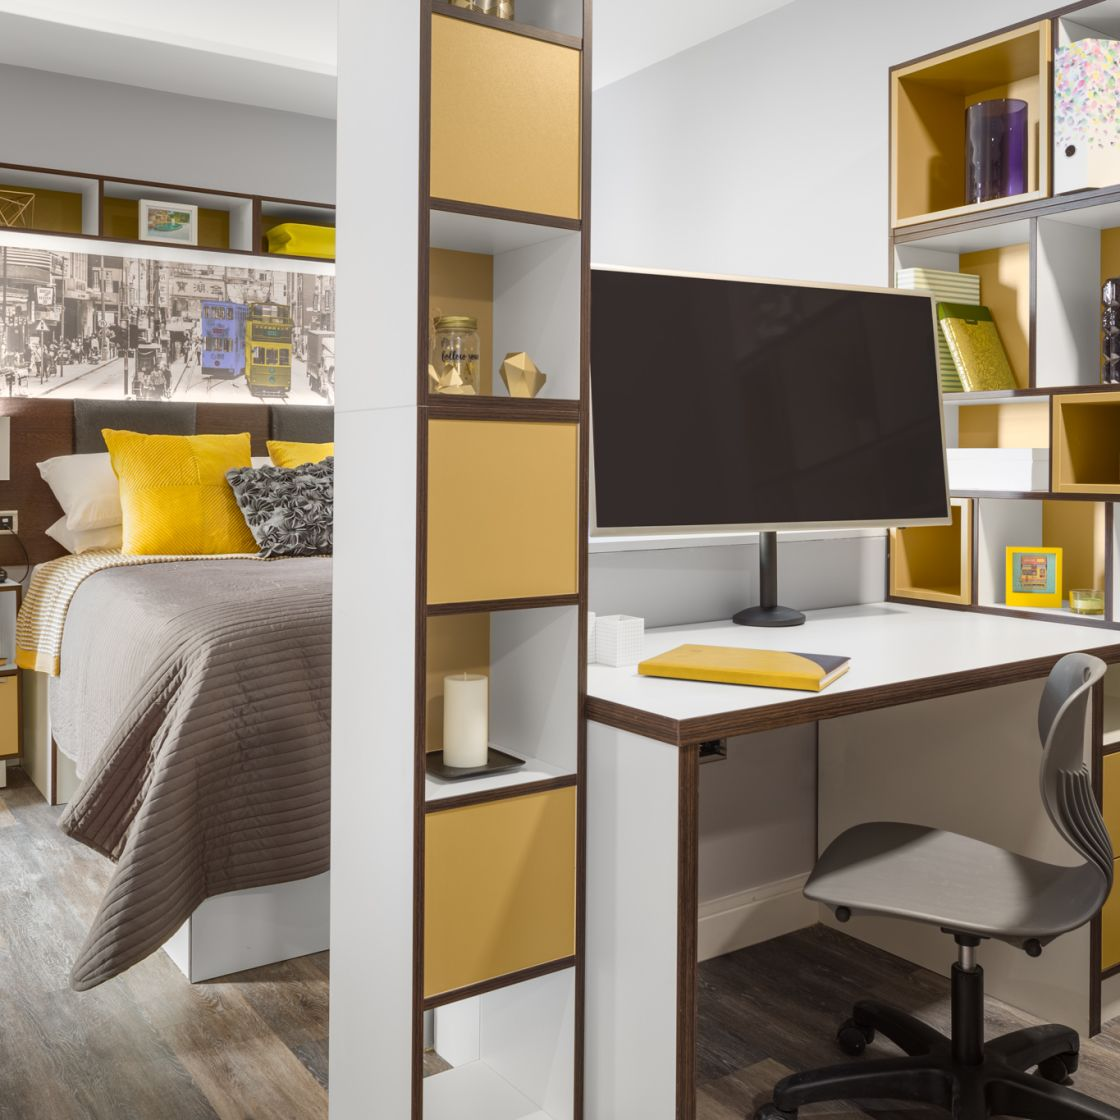 Grande Student Apartment in Liverpool. Double Bed, TV and Desk. IconInc, The Ascent